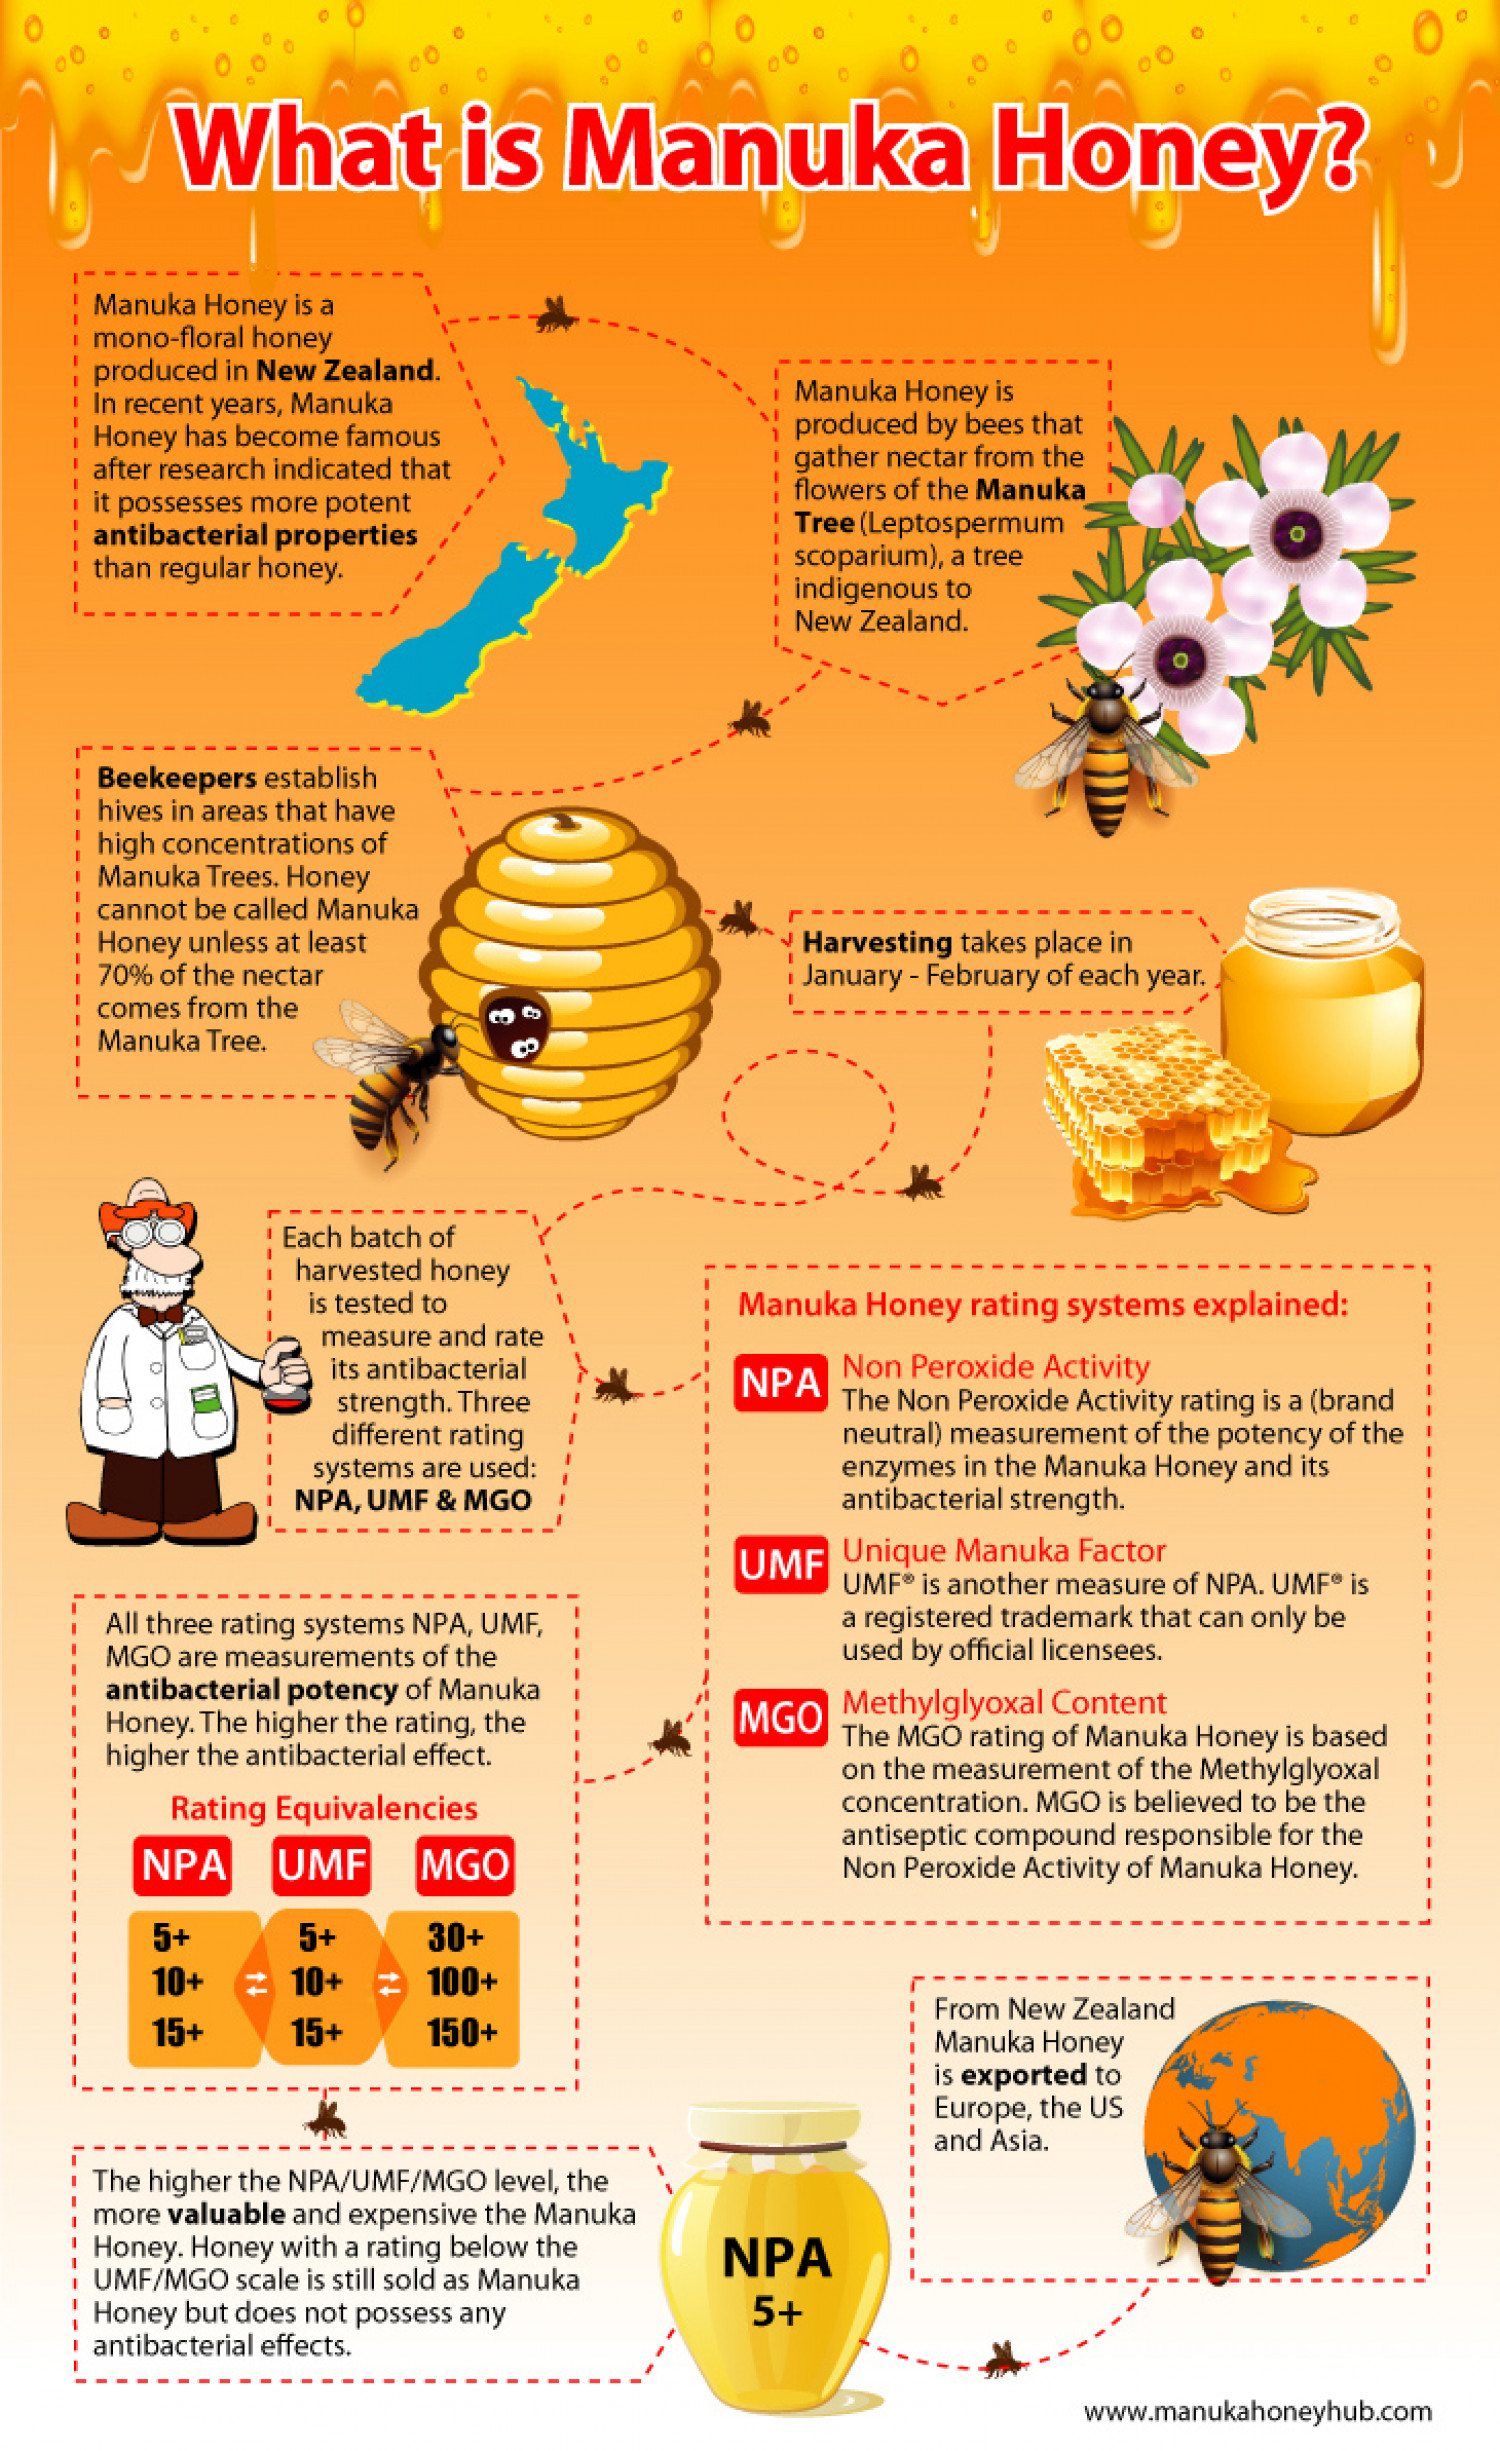 """A concise infographic summarizing the key answers to the question """"What is Manuka Honey? Infographic"""